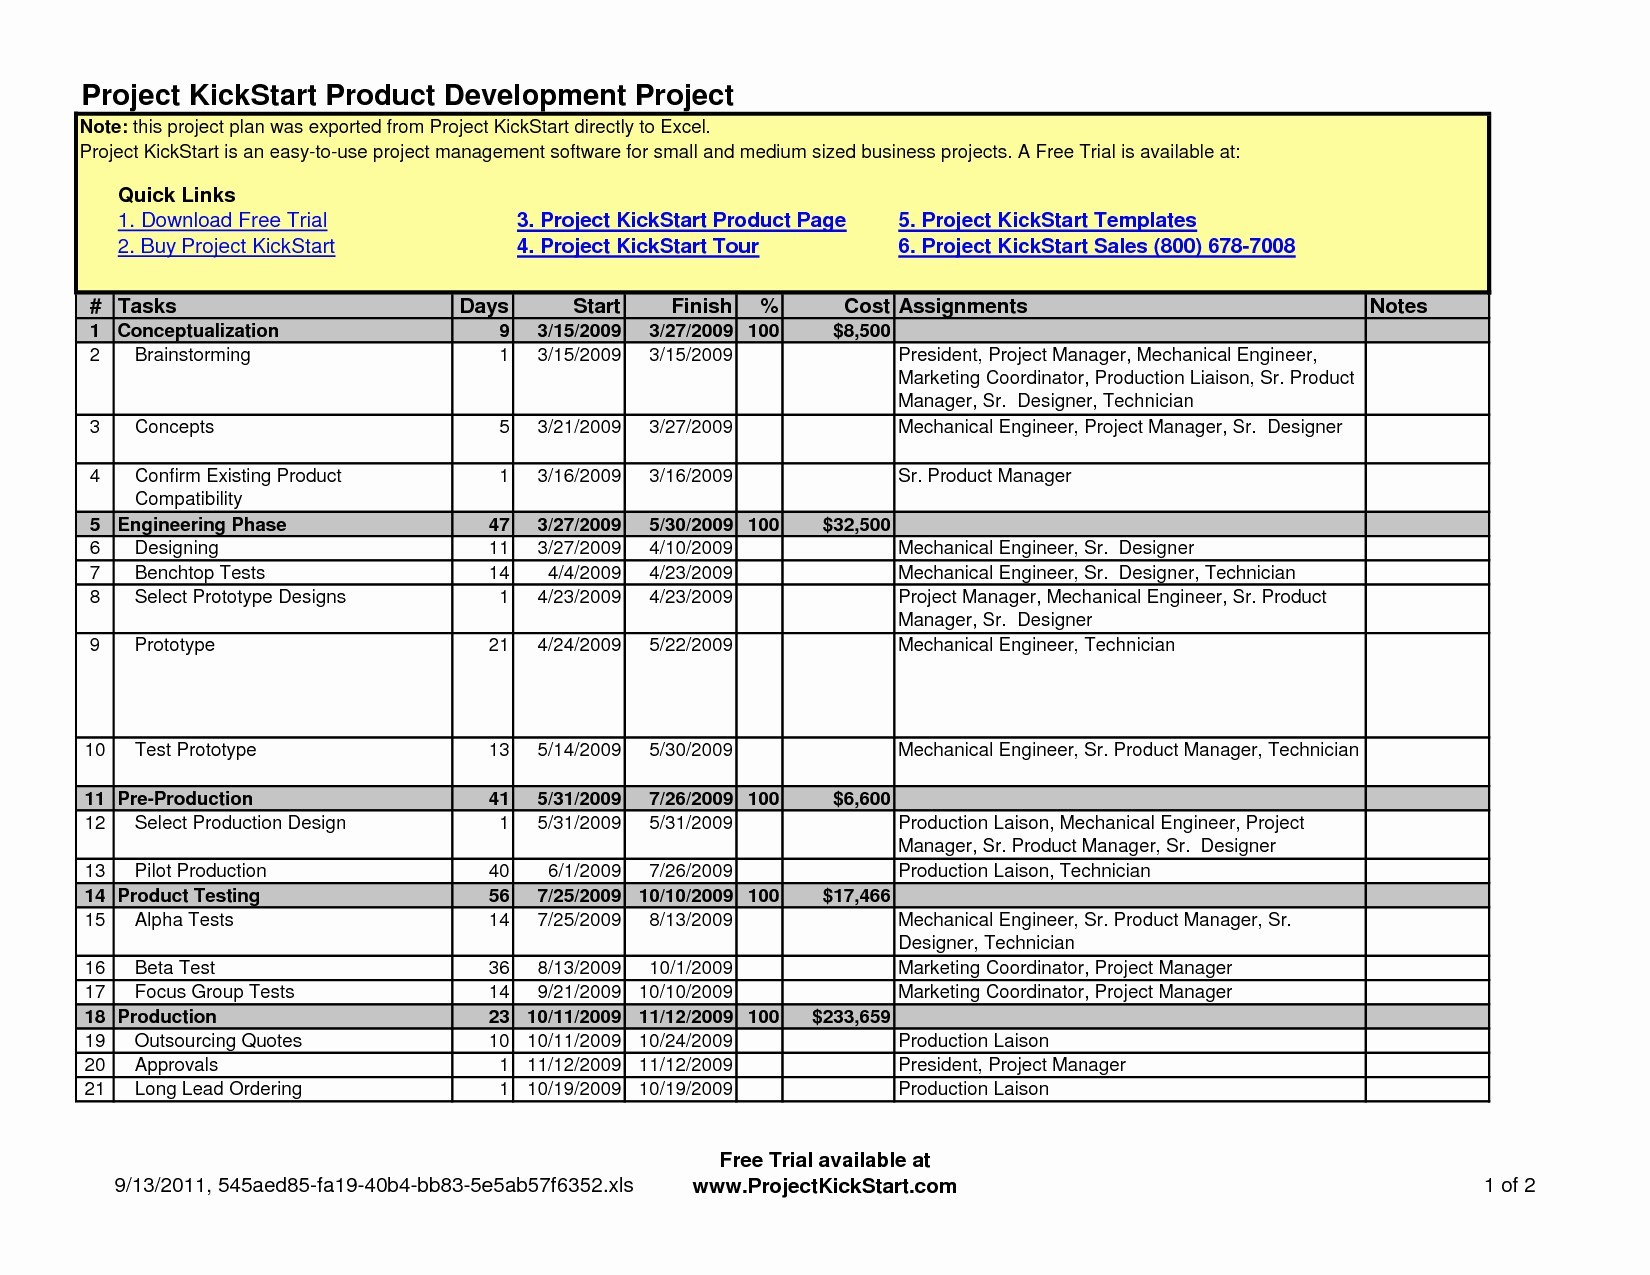 Project Plan Template Excel Free Download Unique Free Excel Project To Project Management Templates In Excel For Free Download